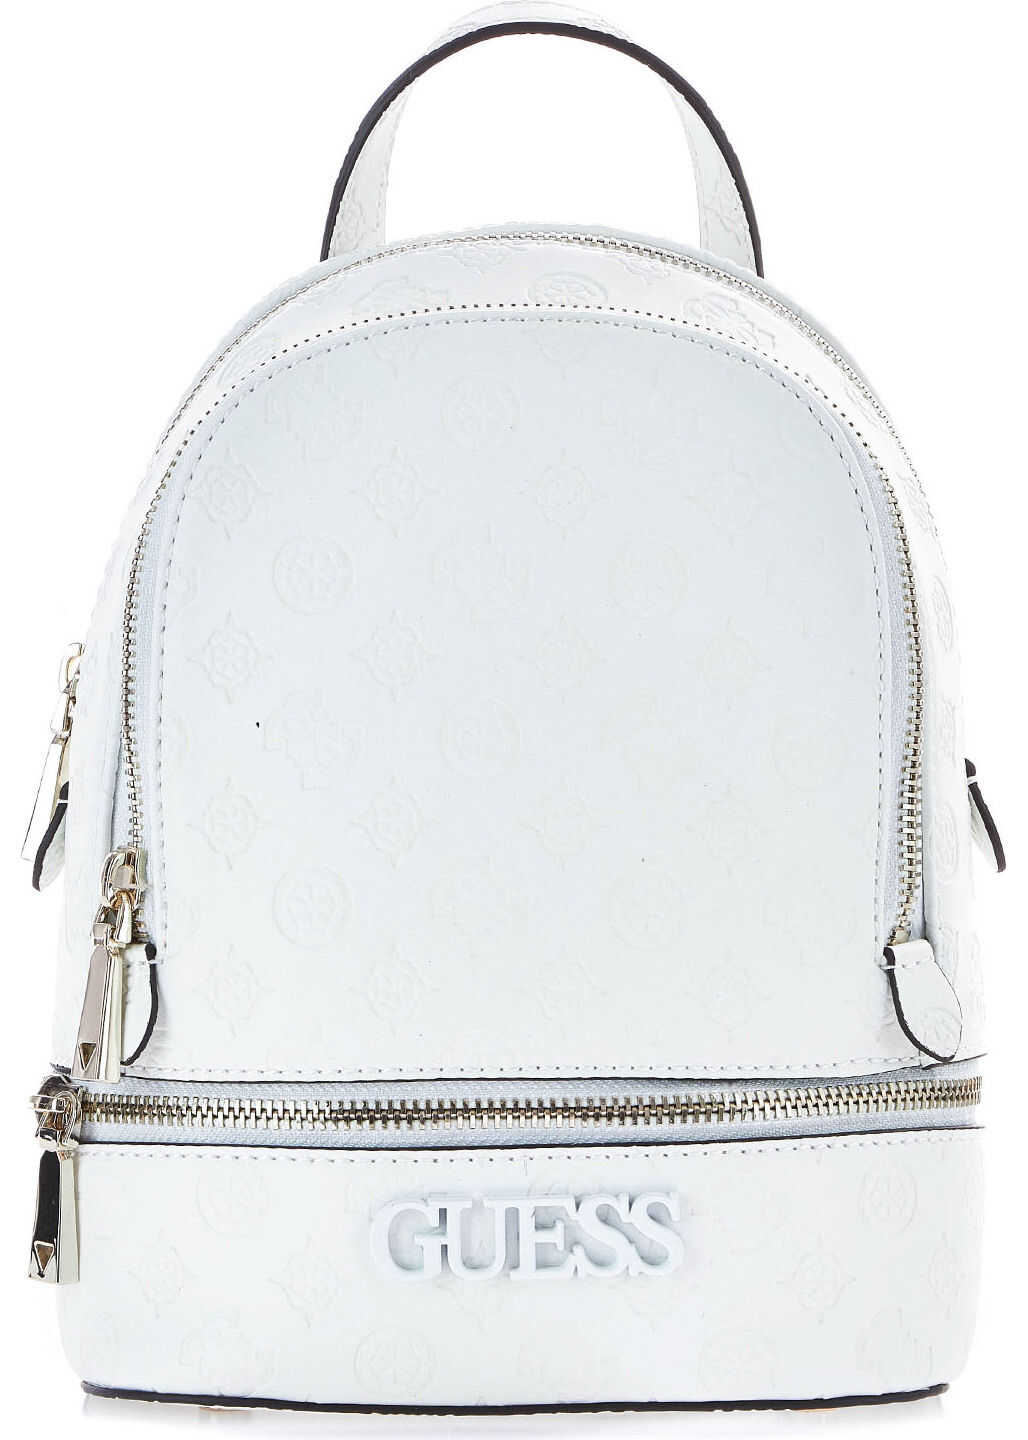 GUESS Small backpack with logo imprint White